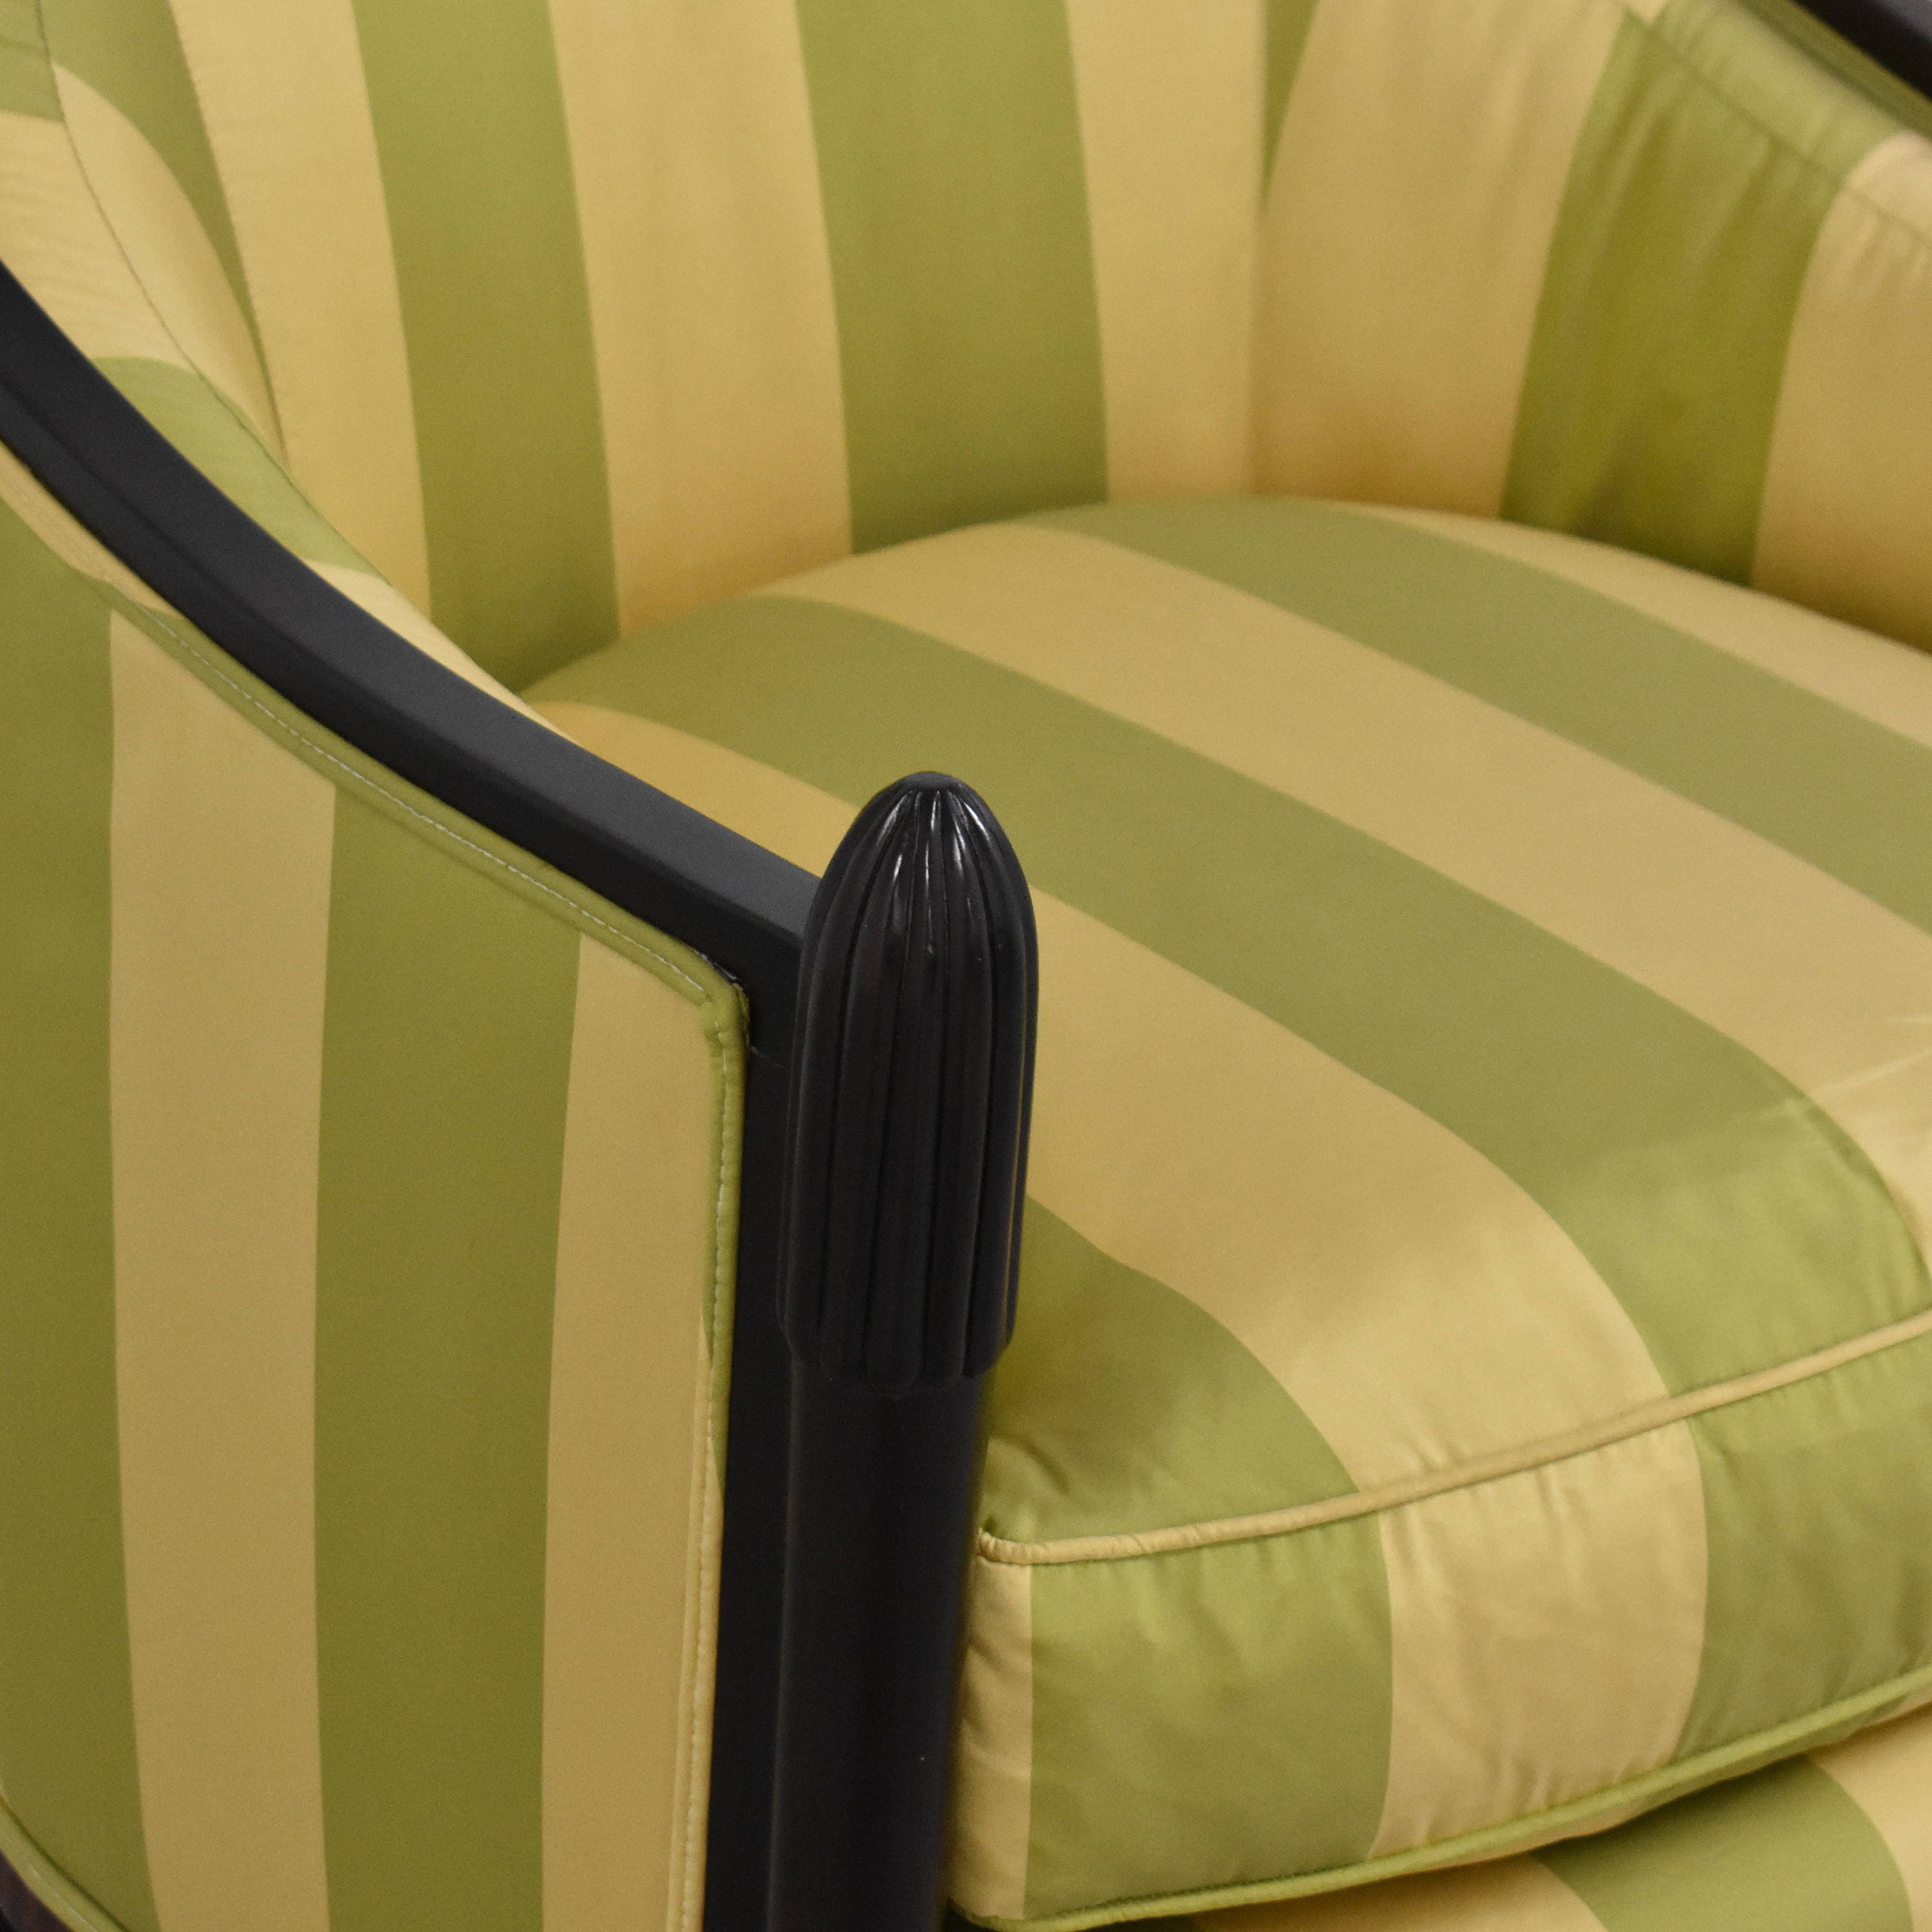 Baker Furniture Barbara Barry for Baker Furniture Deco Classic Lounge Chair Accent Chairs